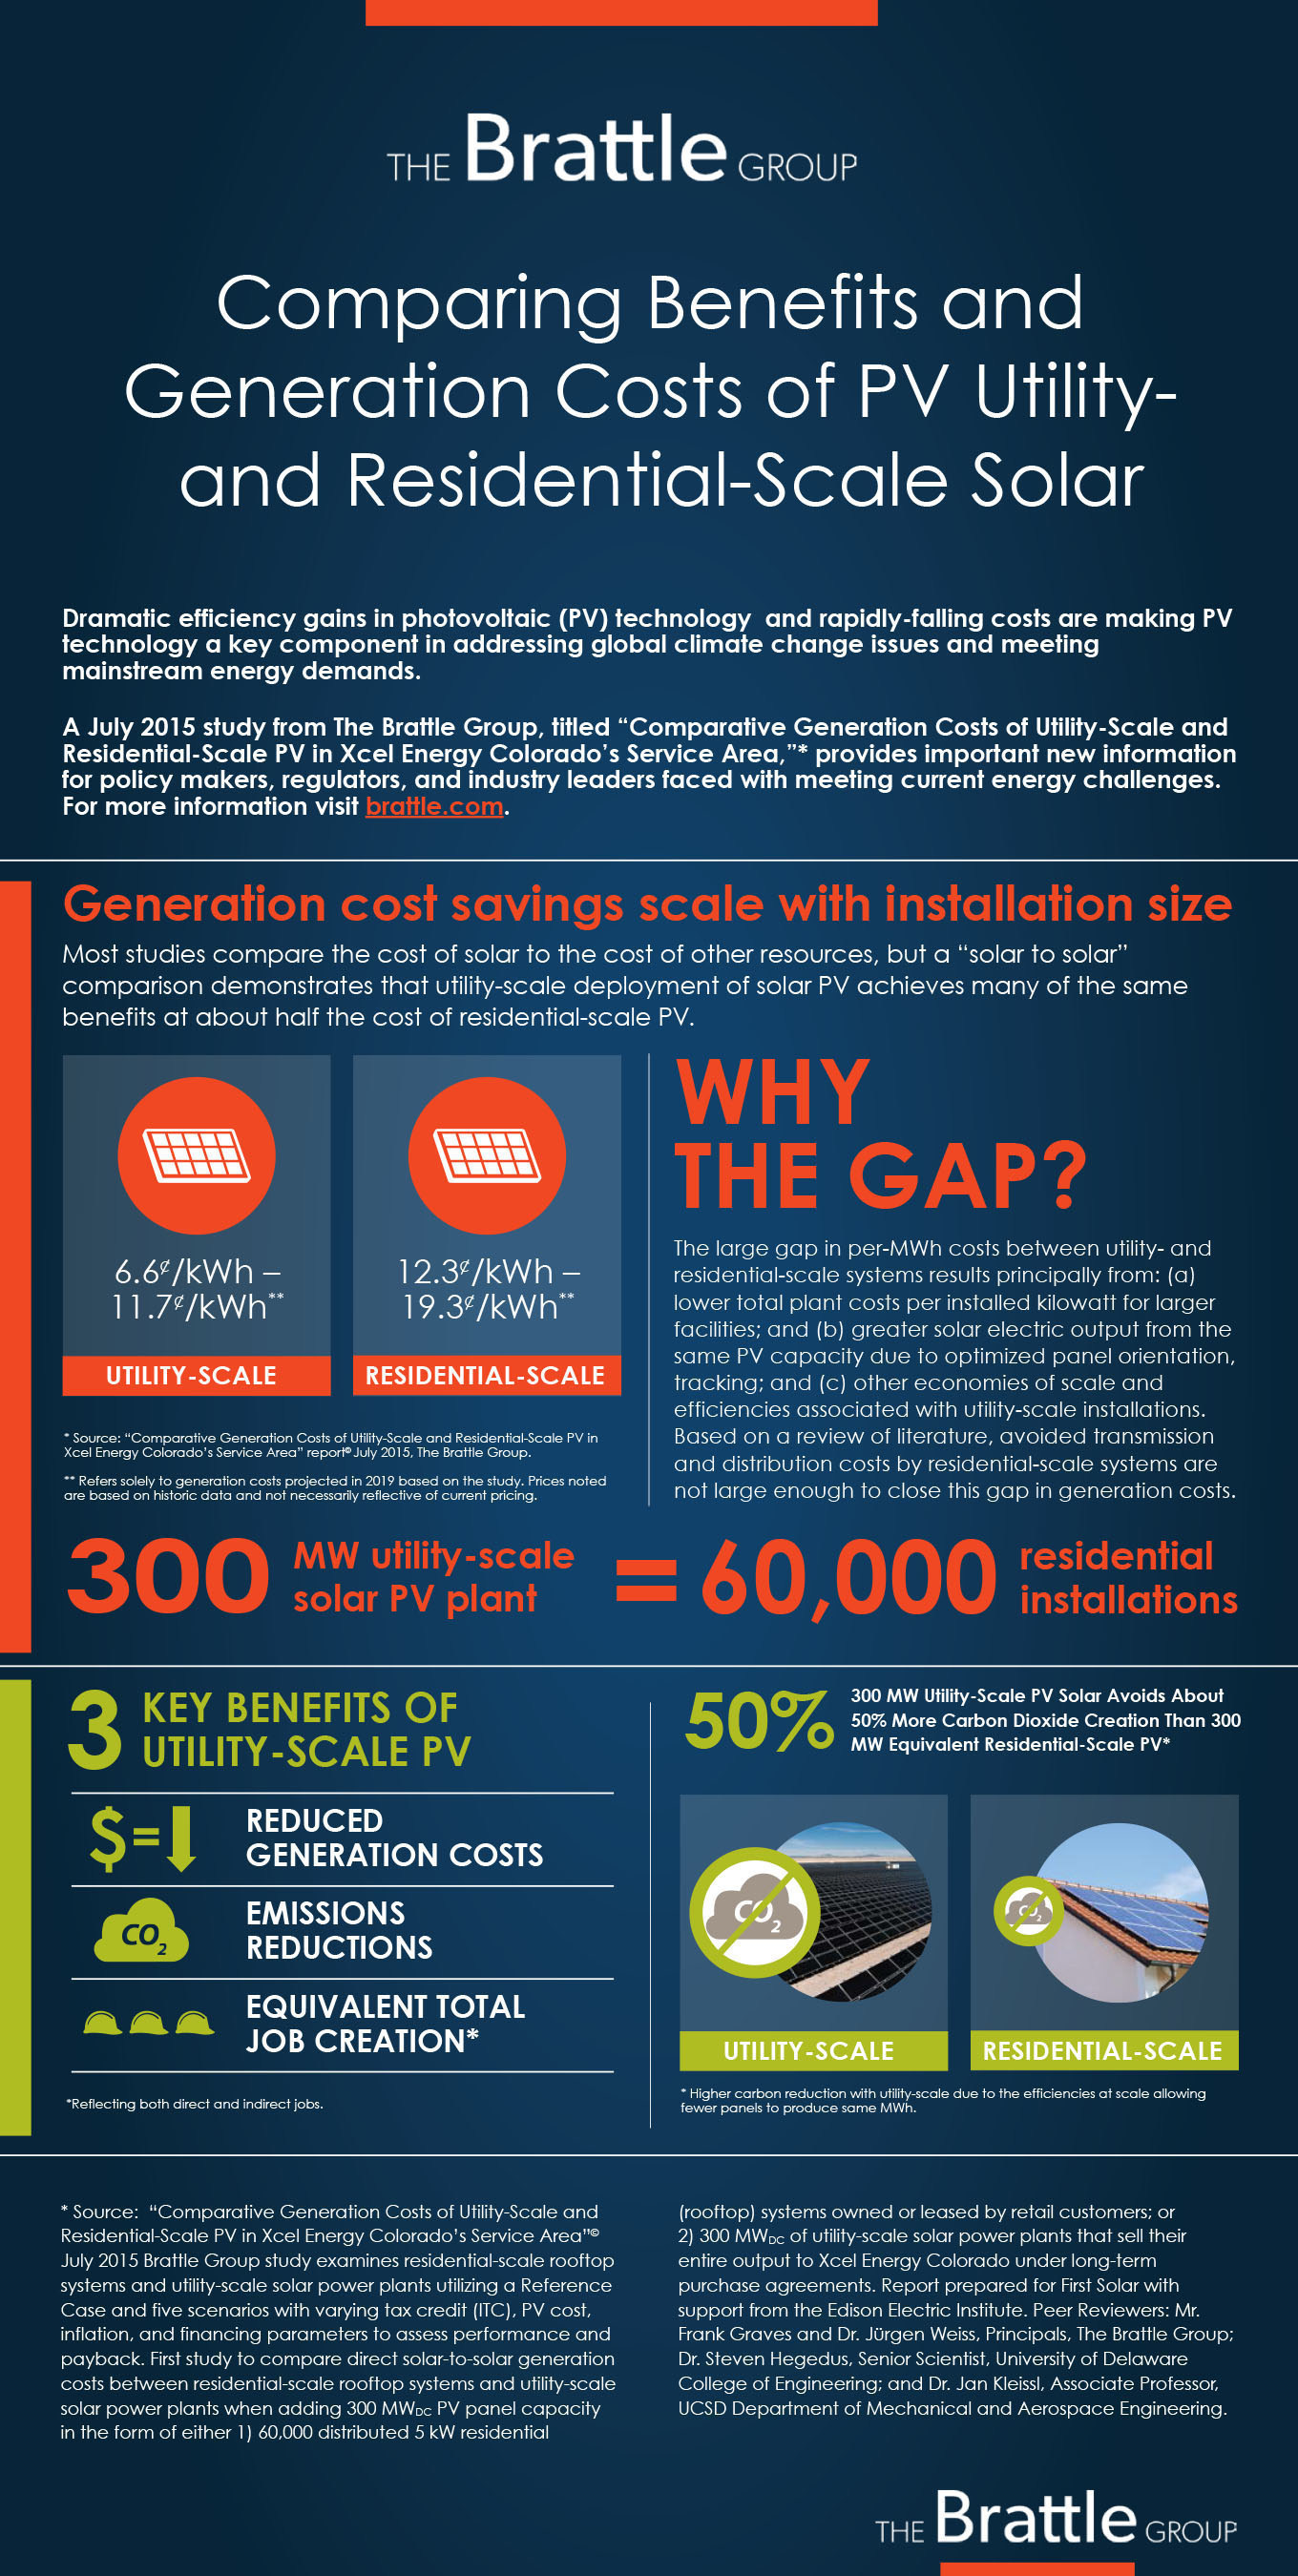 Comparing Benefits and Generation Costs of PV Utility- and Residential-Scale Solar